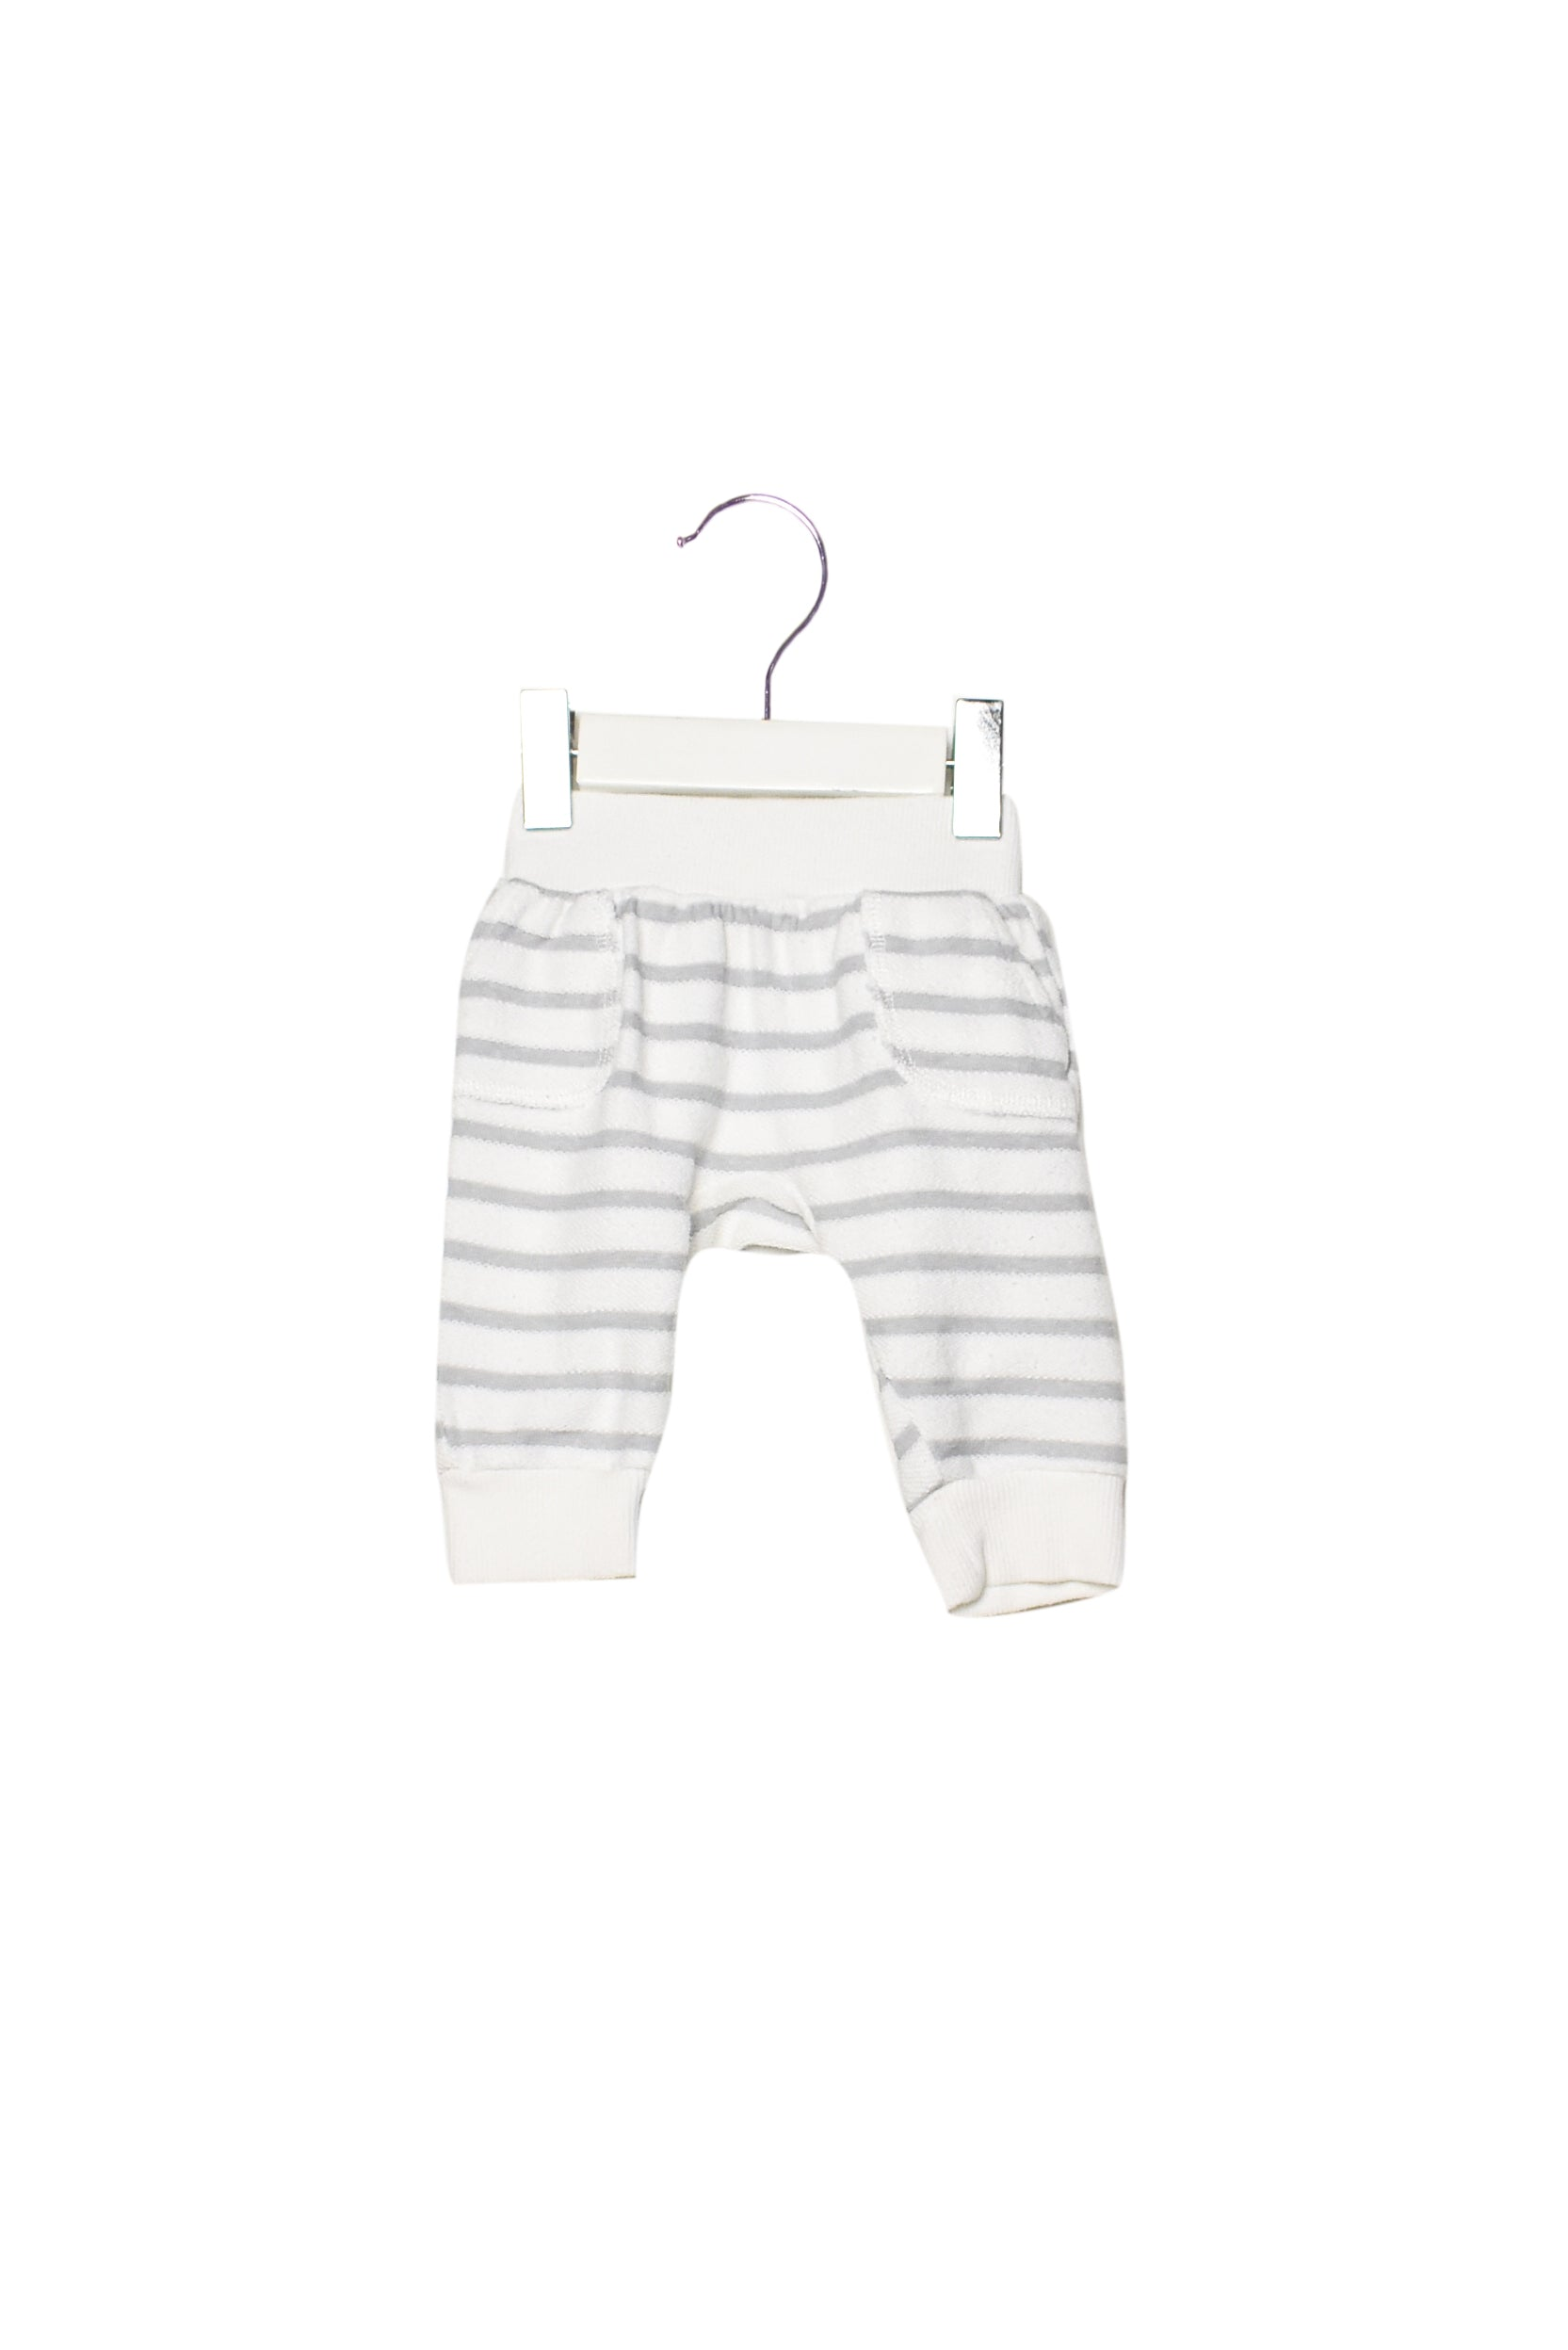 10011944 Seed Baby ~ Sweatpants 0-3M at Retykle